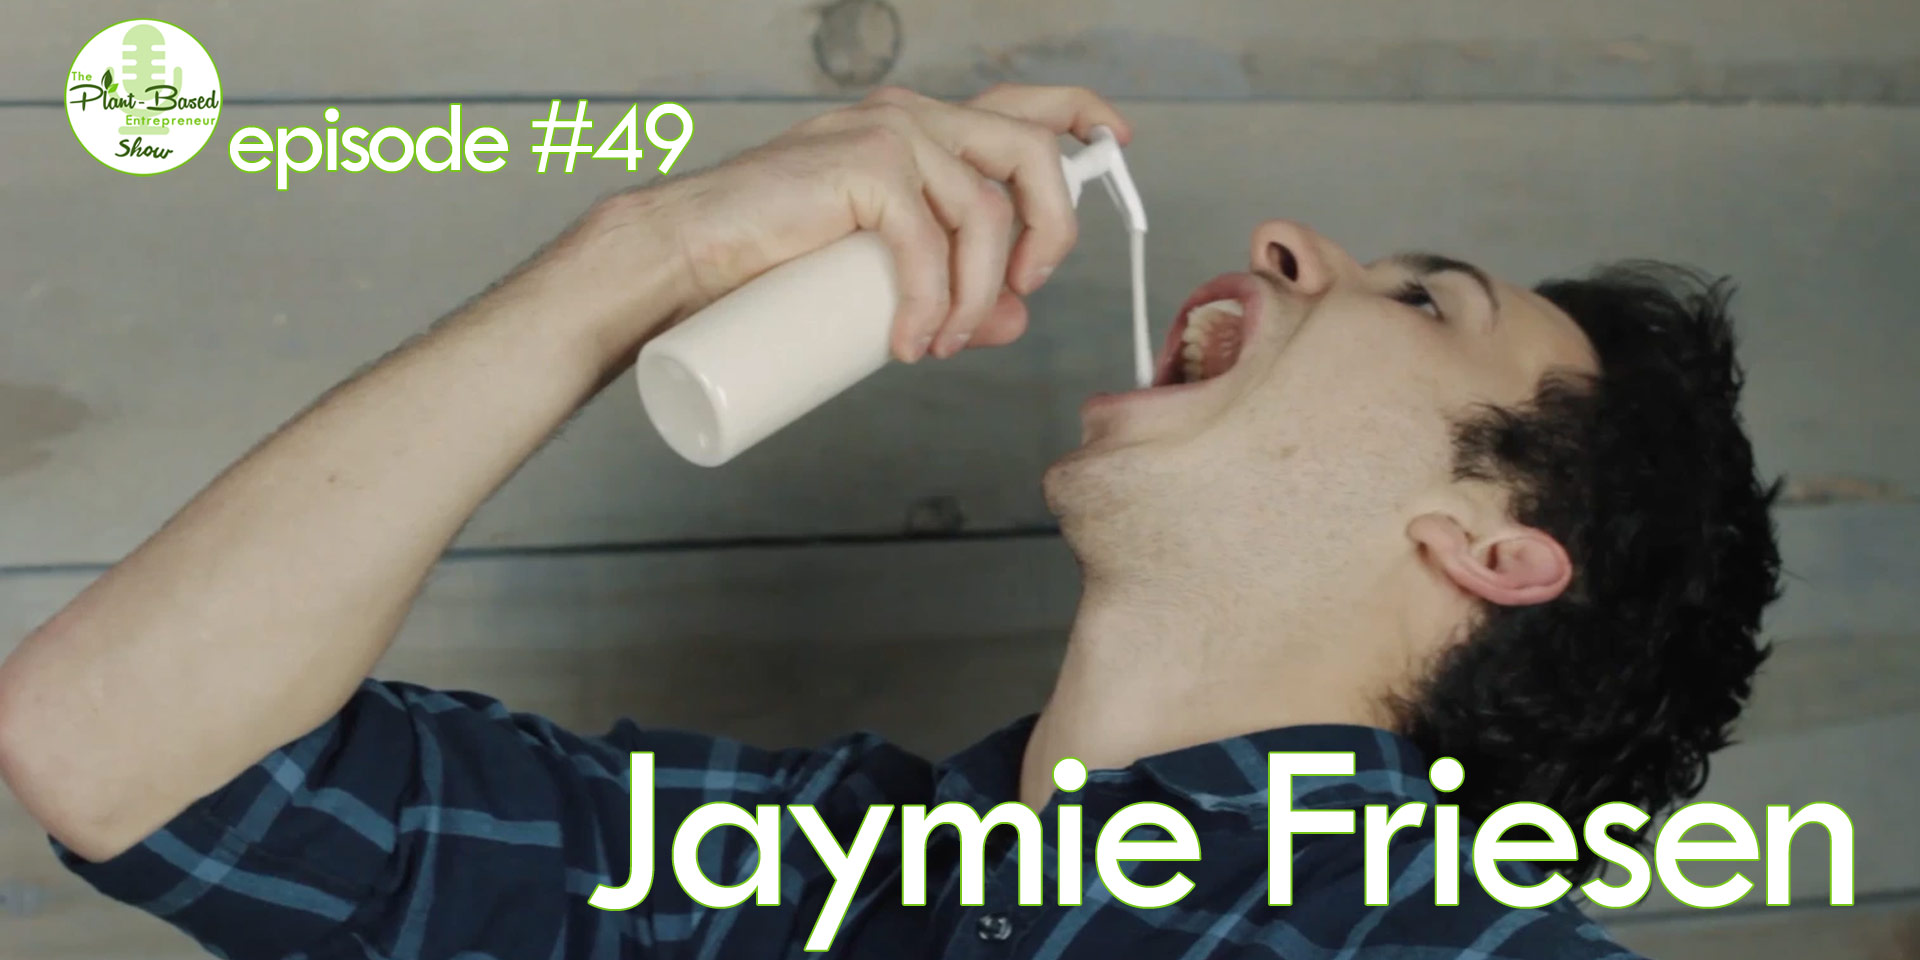 Episode #49 - Jaymie Friesen